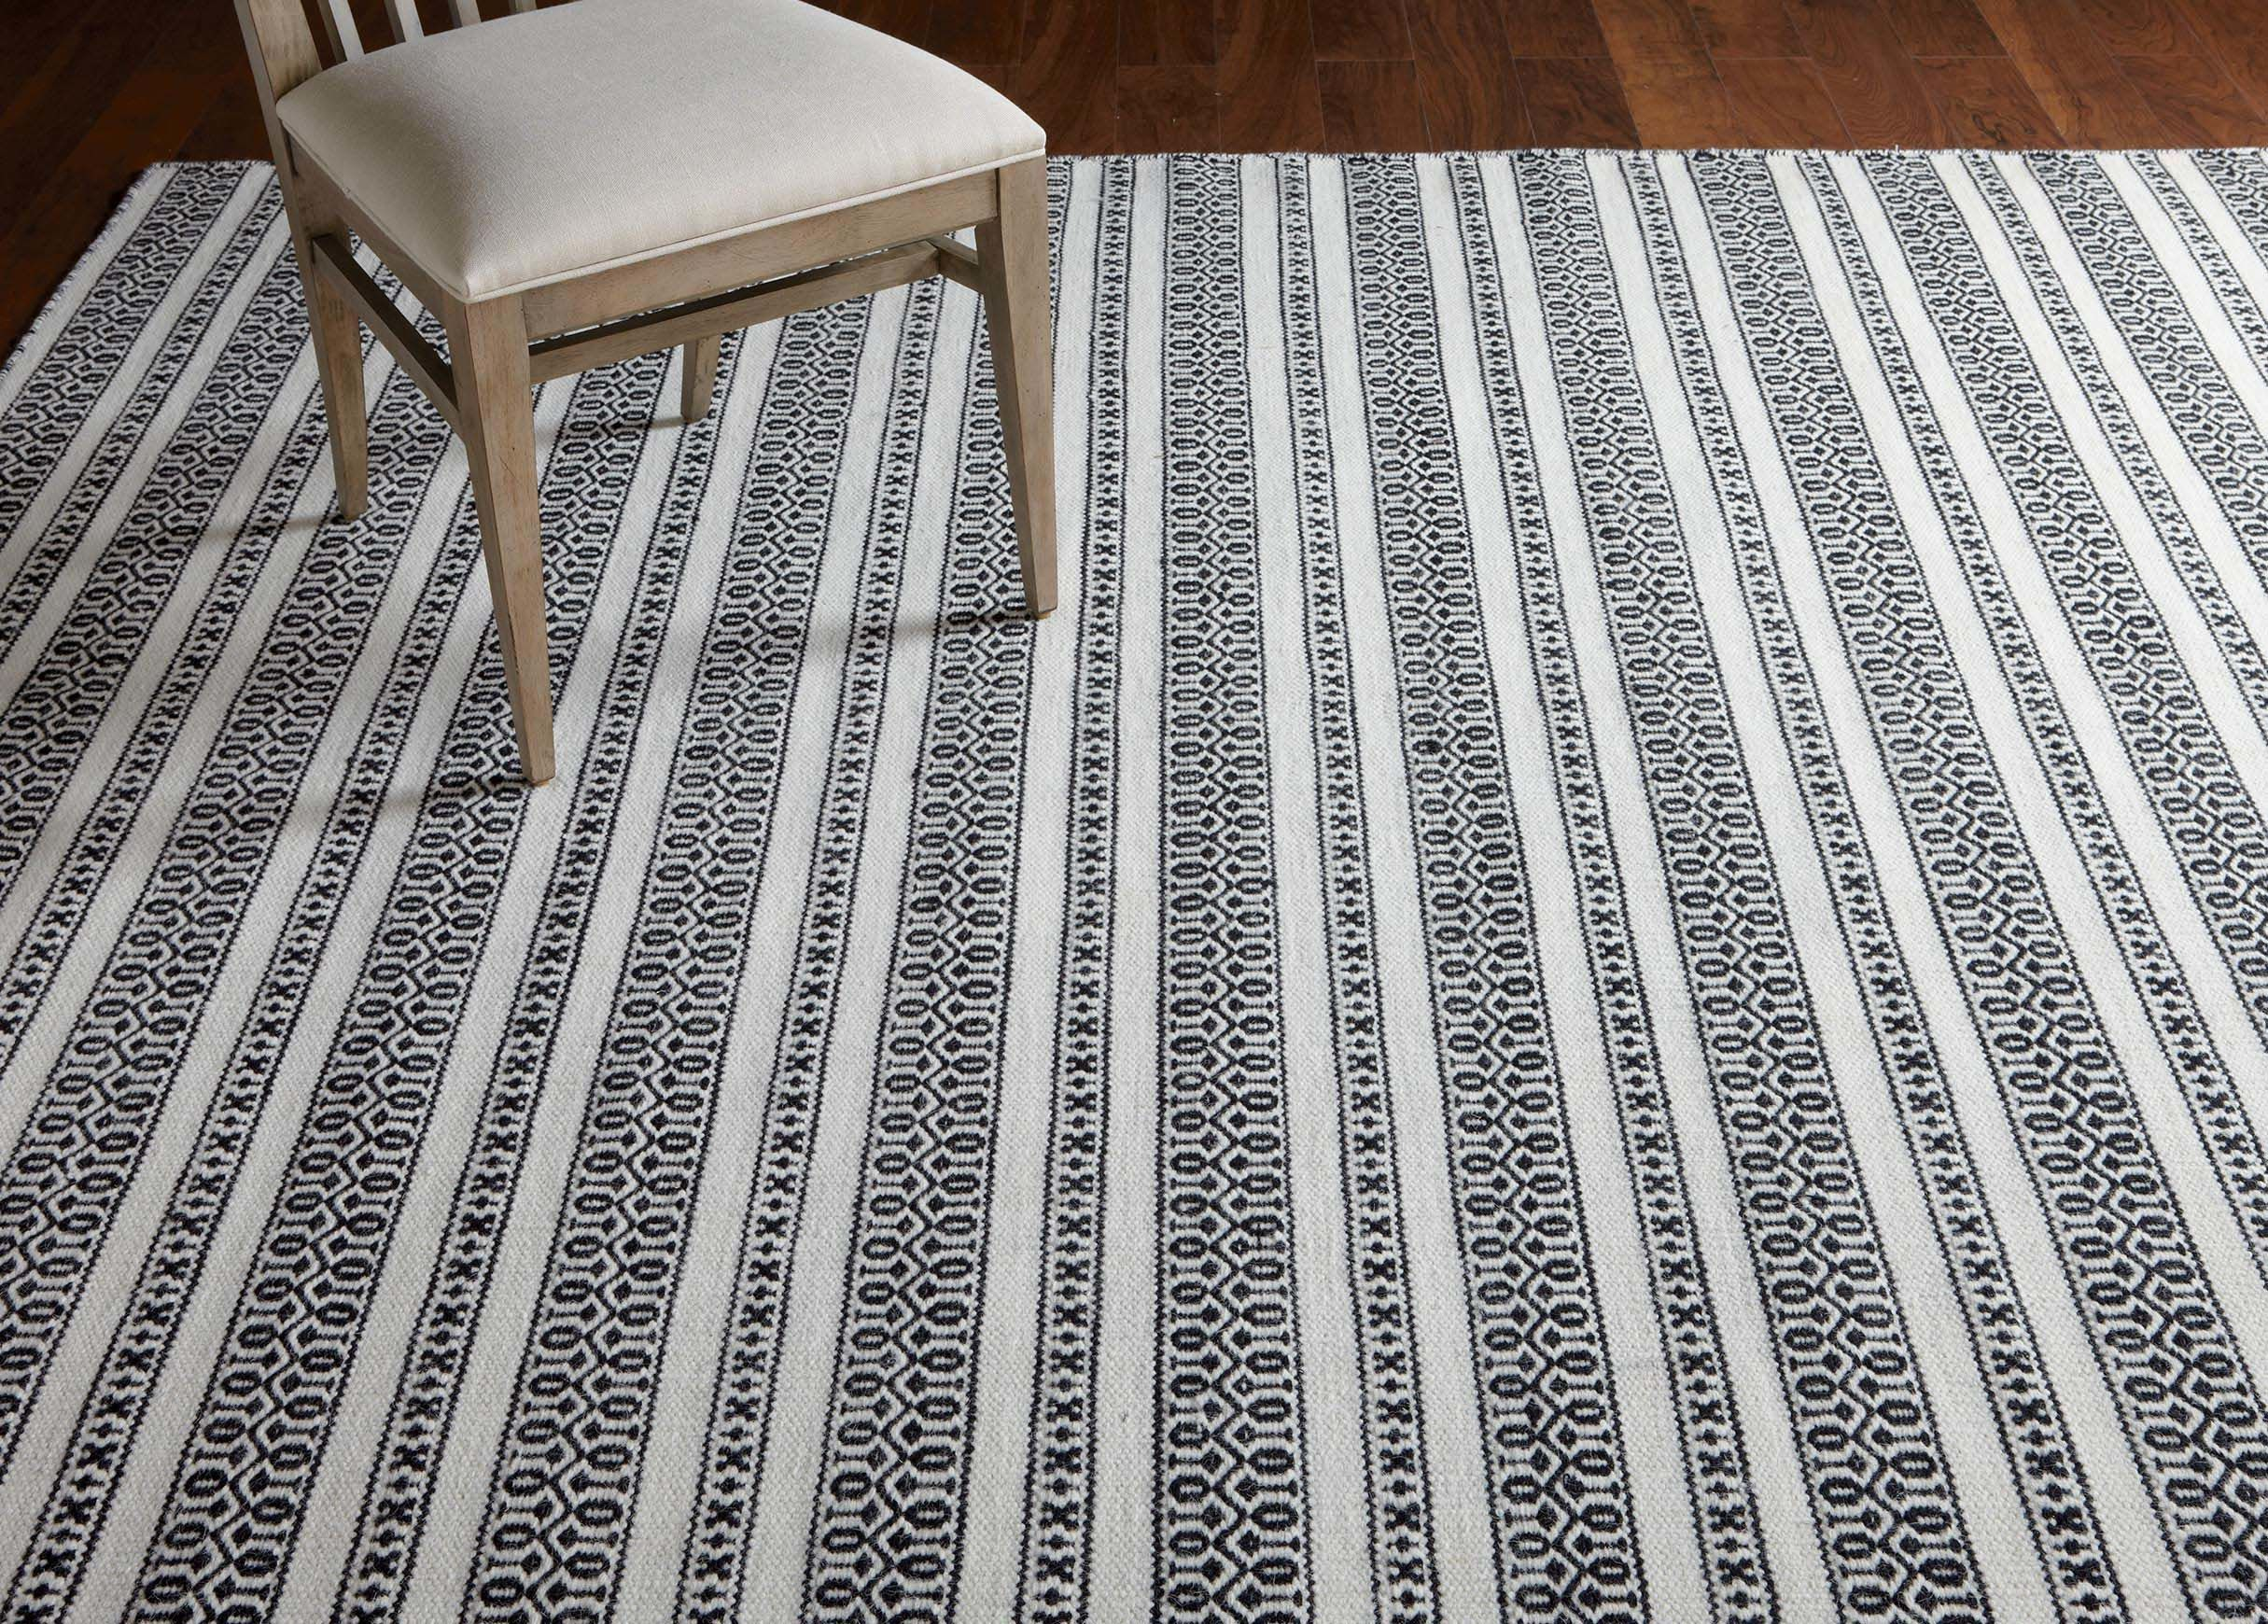 Woven Symmetry Rug Cream Black Flat Woven Rug Rugs Clearance Rugs